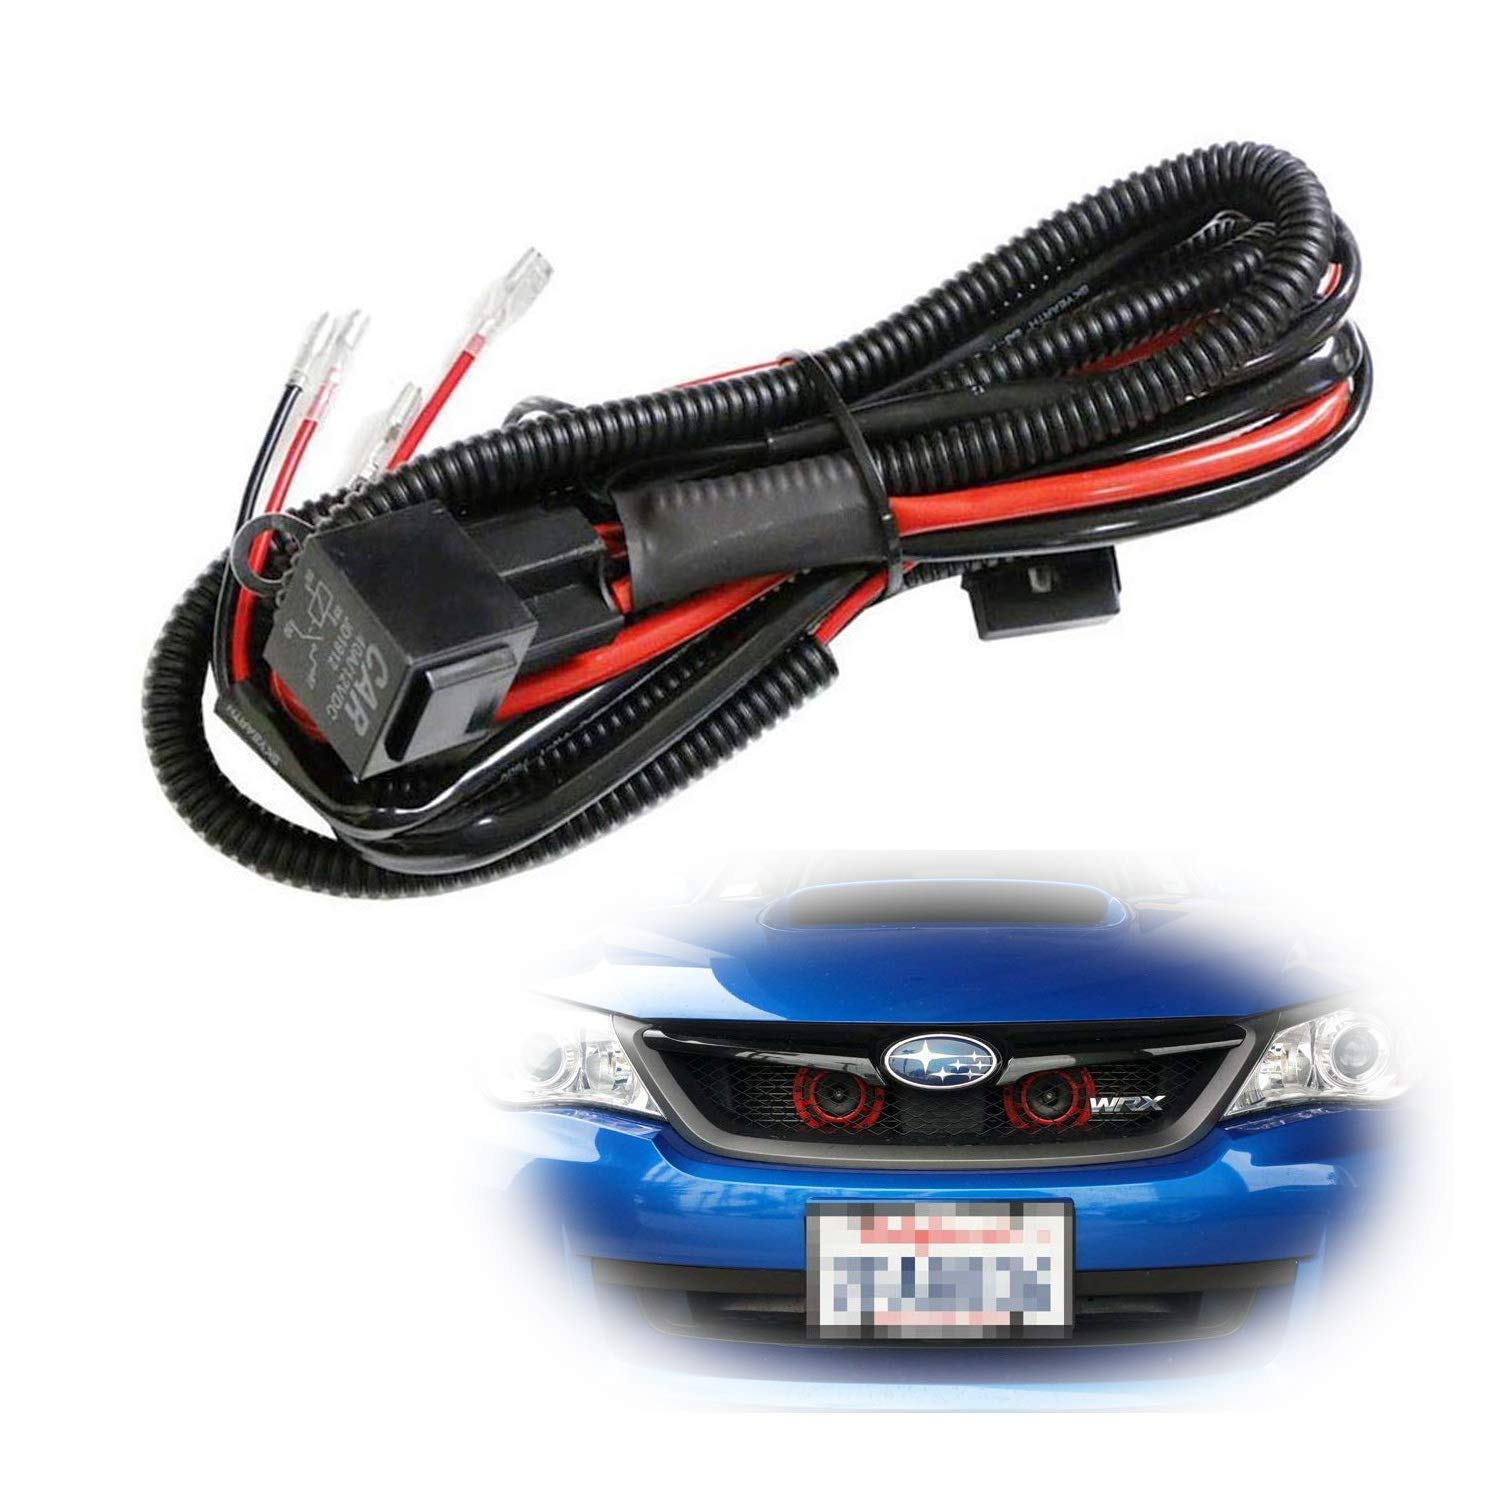 Ijdmtoy 1 12v Horn Wiring Harness Relay Kit For Car 2005 Jeep Grand Cherokee Diagram Truck Grille Mount Blast Tone Horns Actual Not Included Automotive